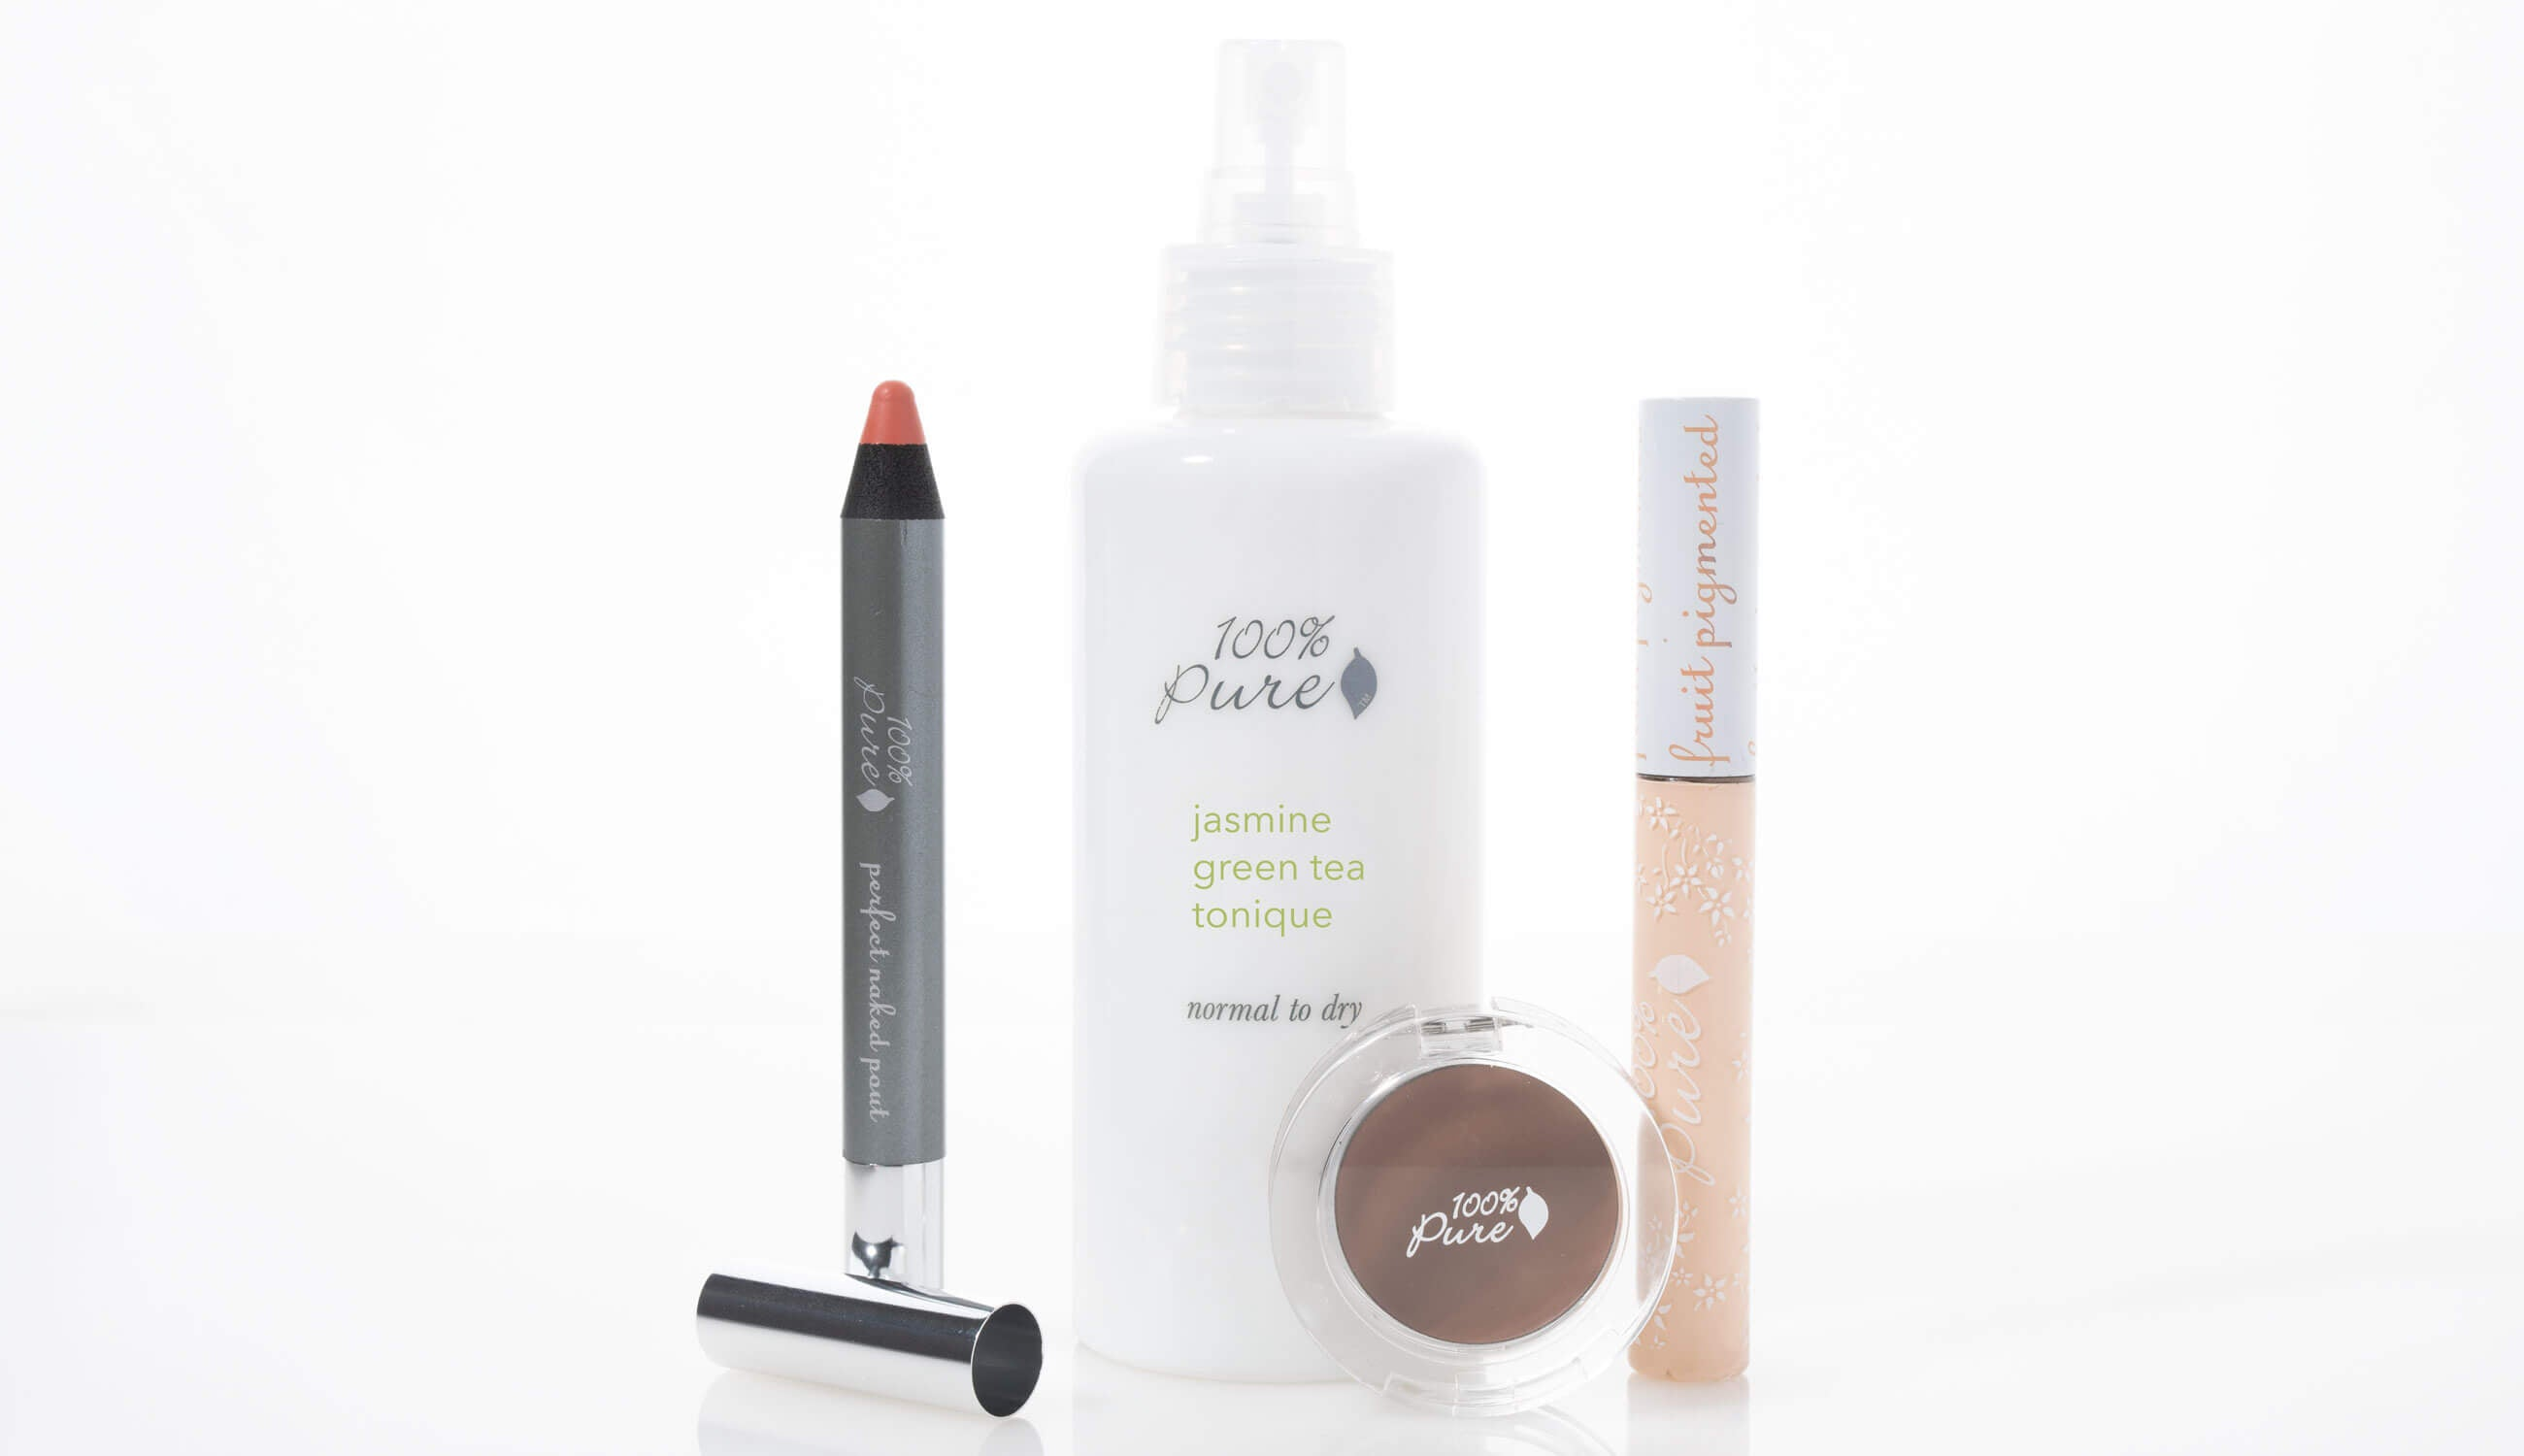 100% Pure last call products